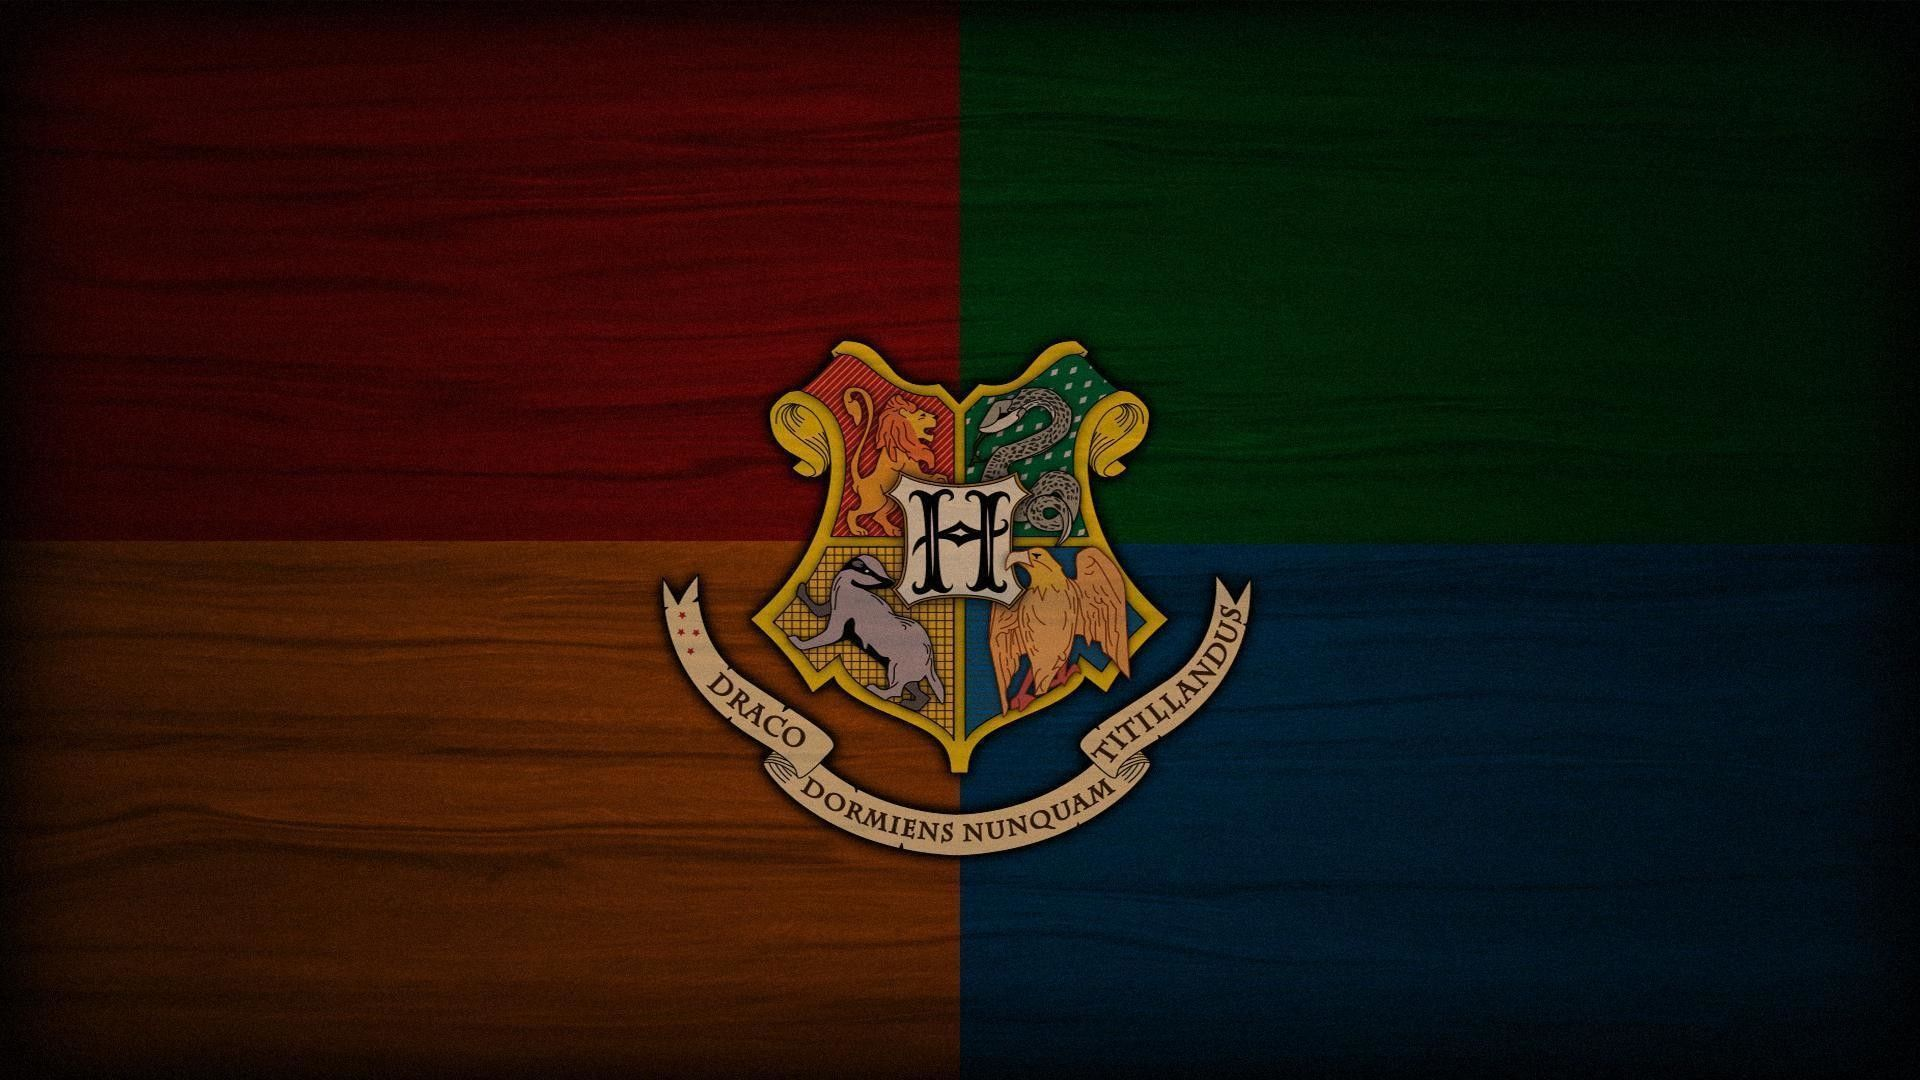 Harry Potter Hogwarts Crest Iphone Wallpapers Top Free Harry